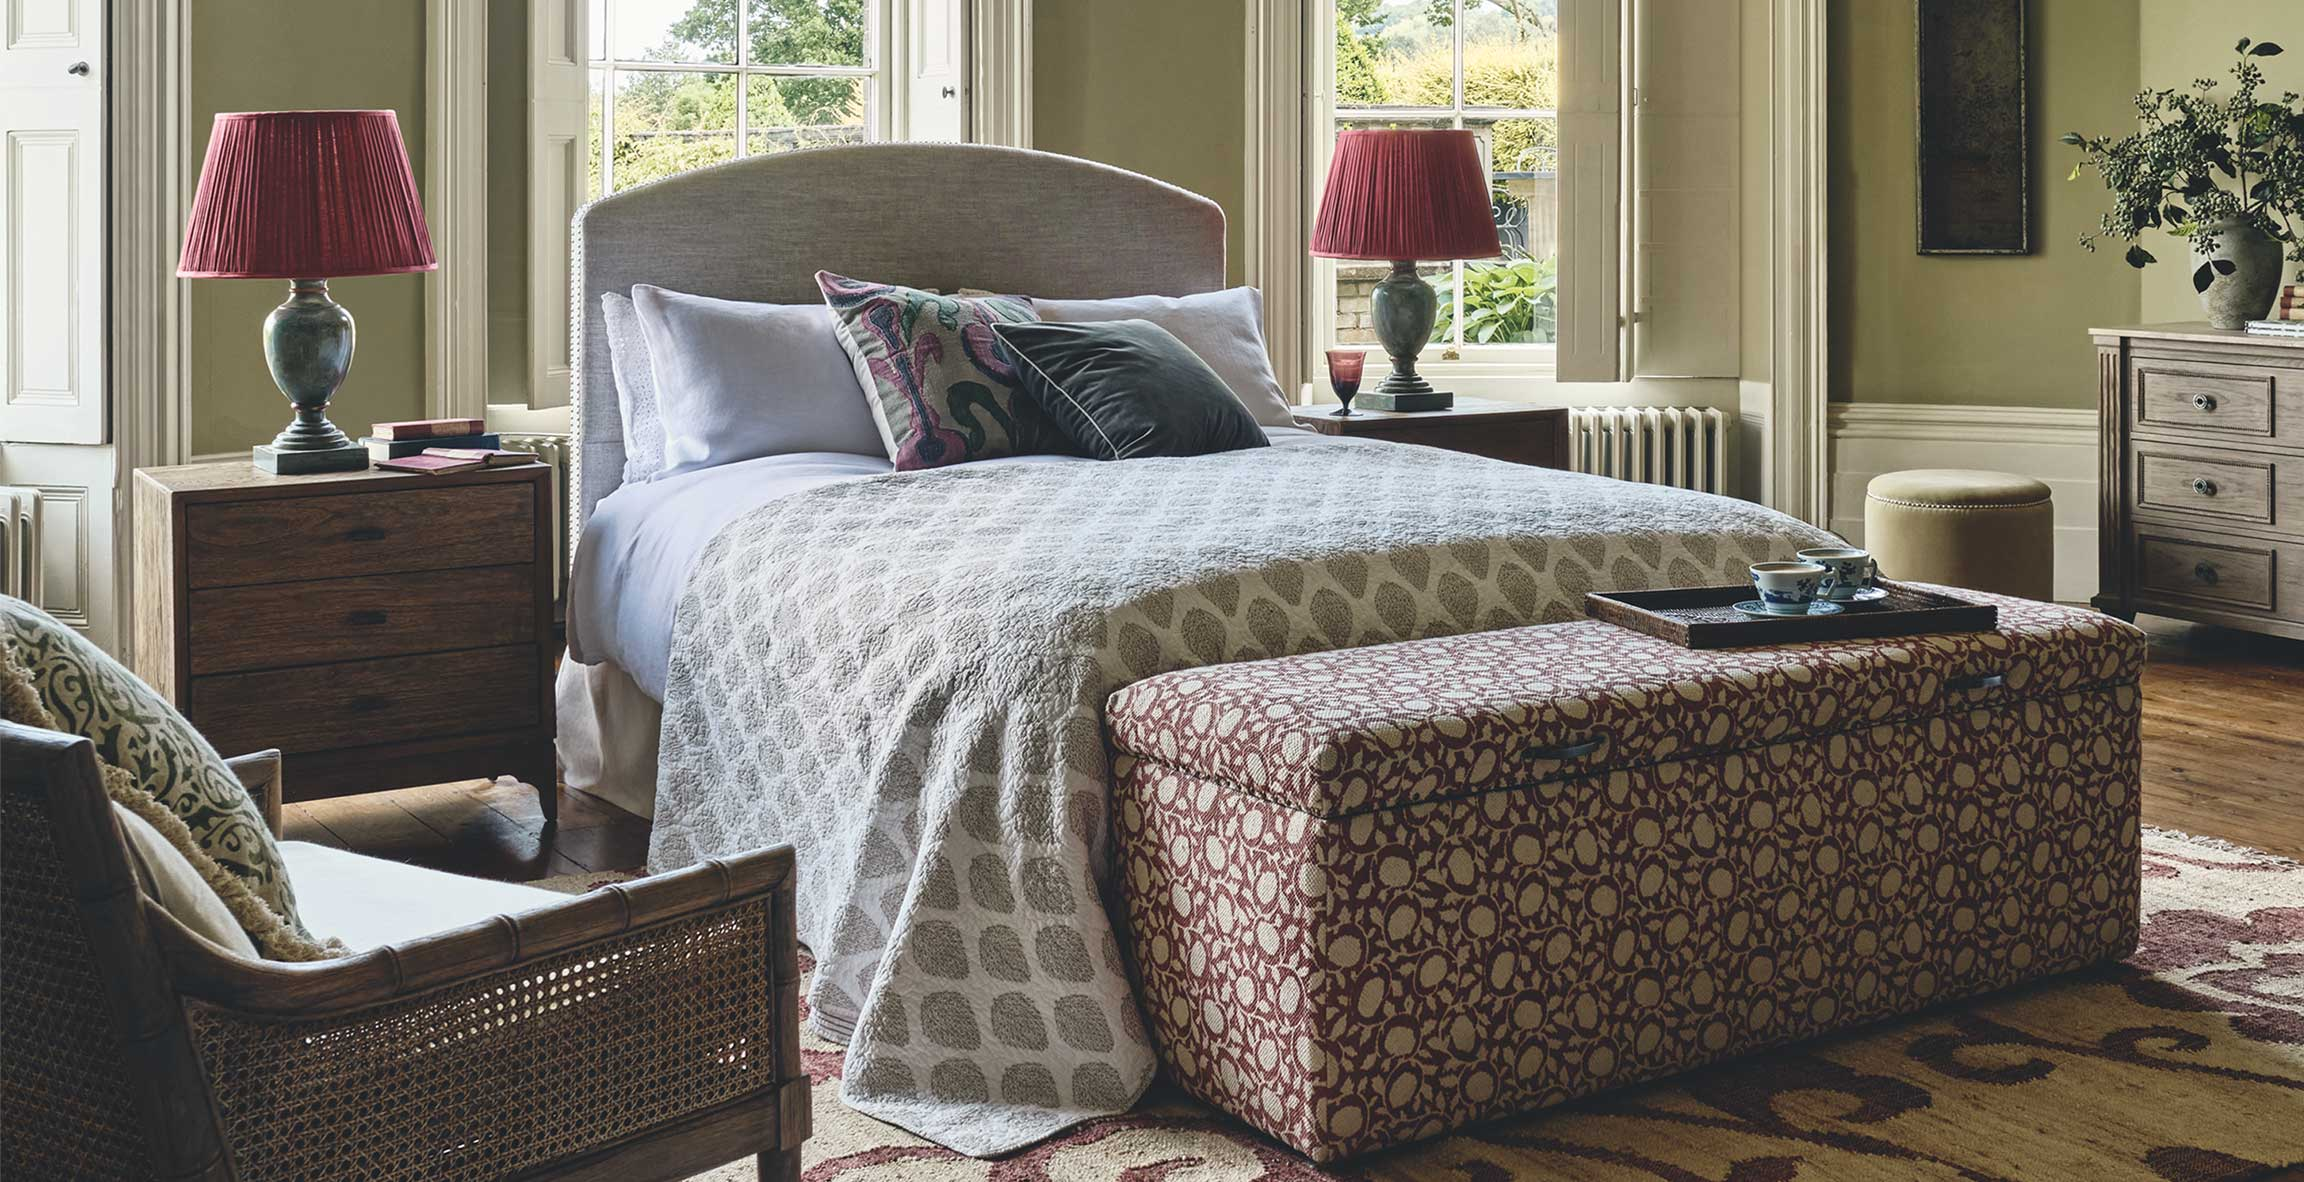 A country house bedroom